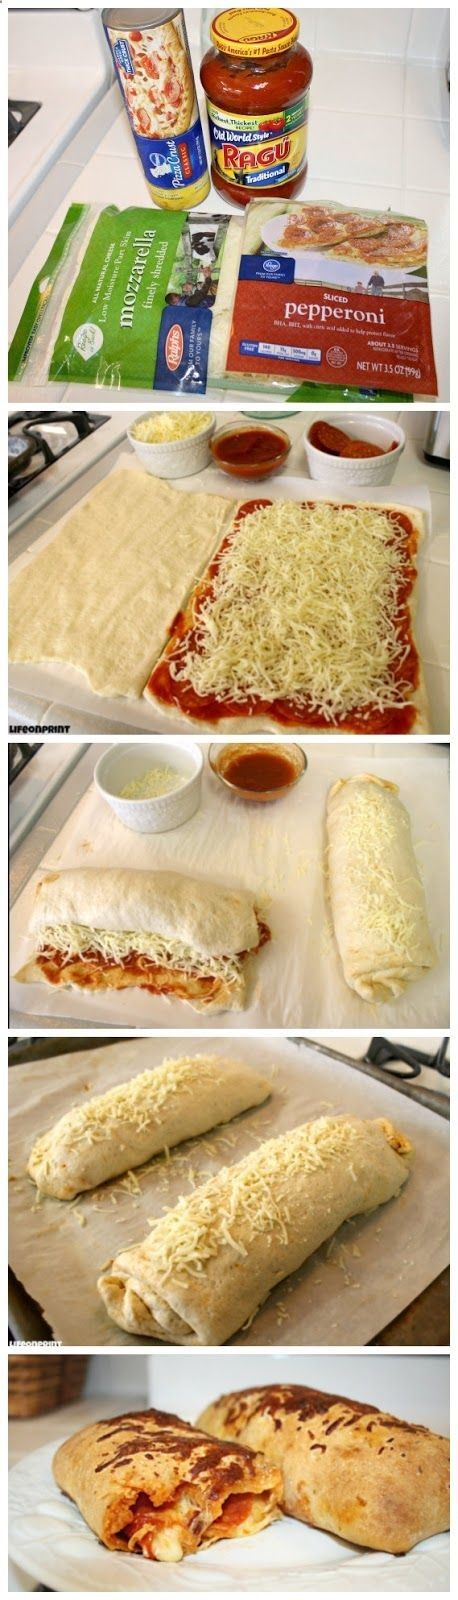 Easy Pizza Roll-Ups